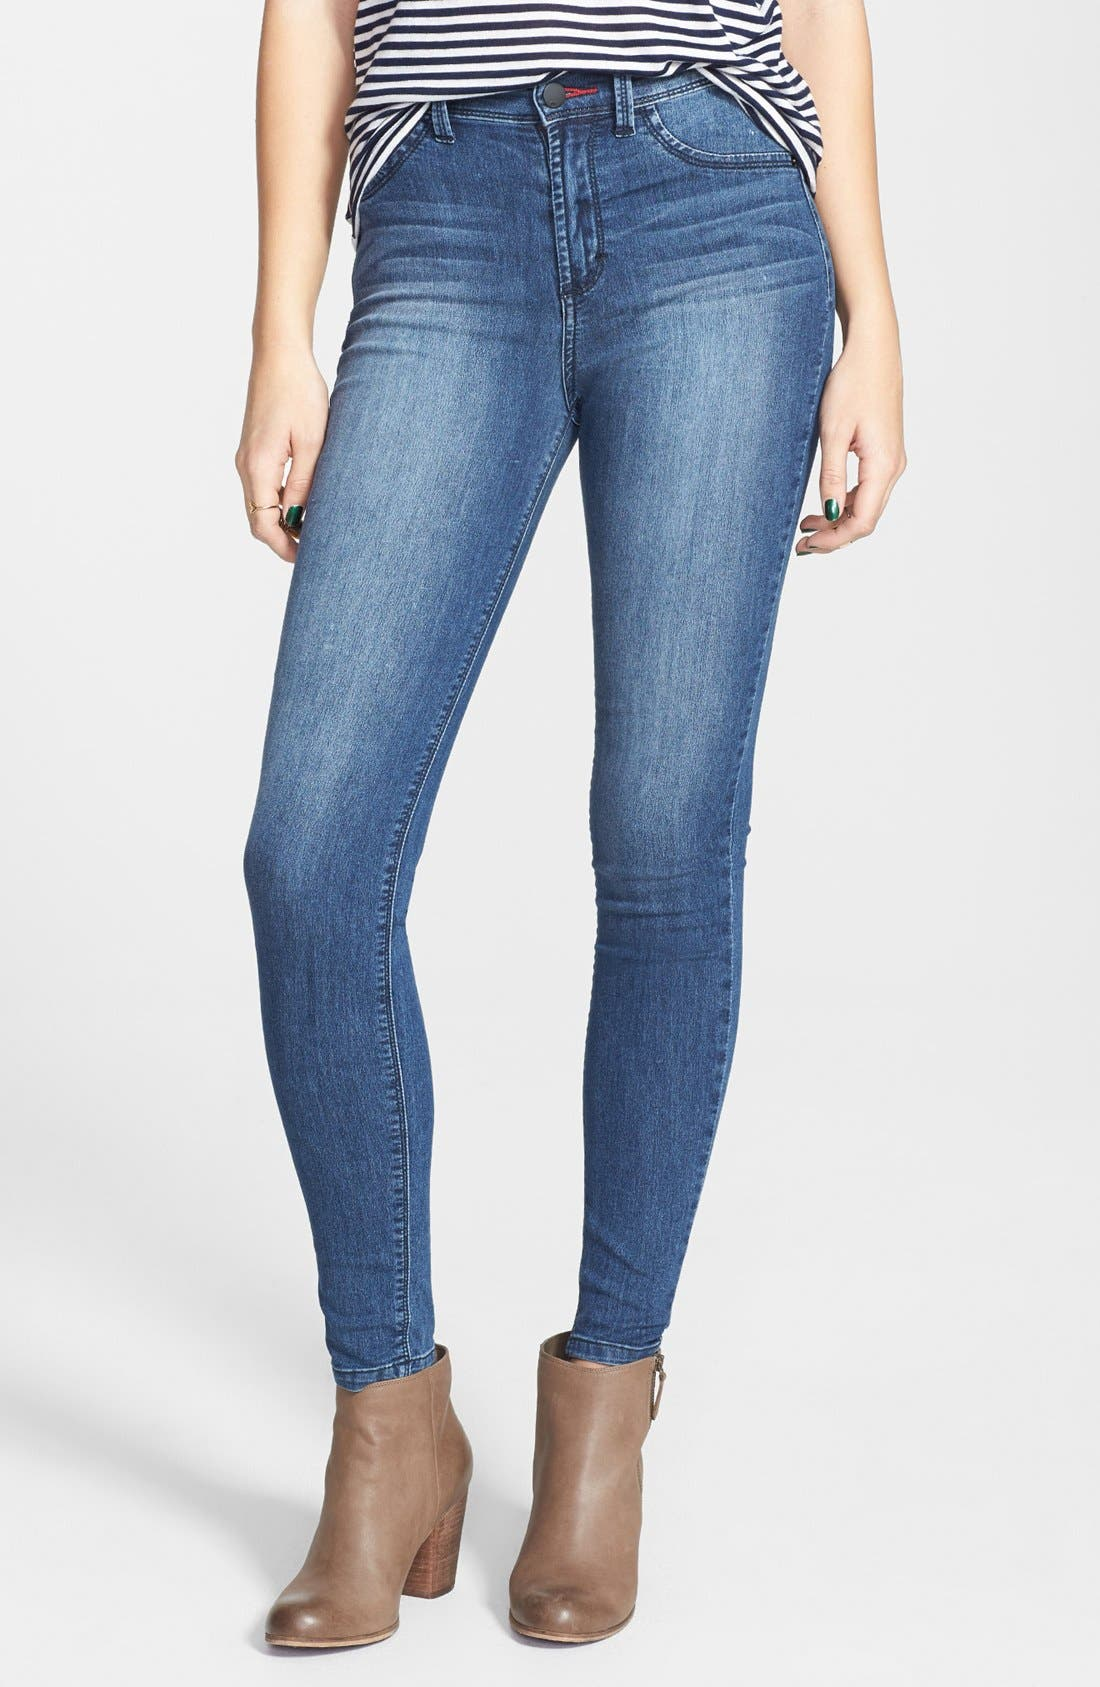 Alternate Image 1 Selected - SP Black High Waist Skinny Jeans (Medium Wash) (Juniors) (Online Only)